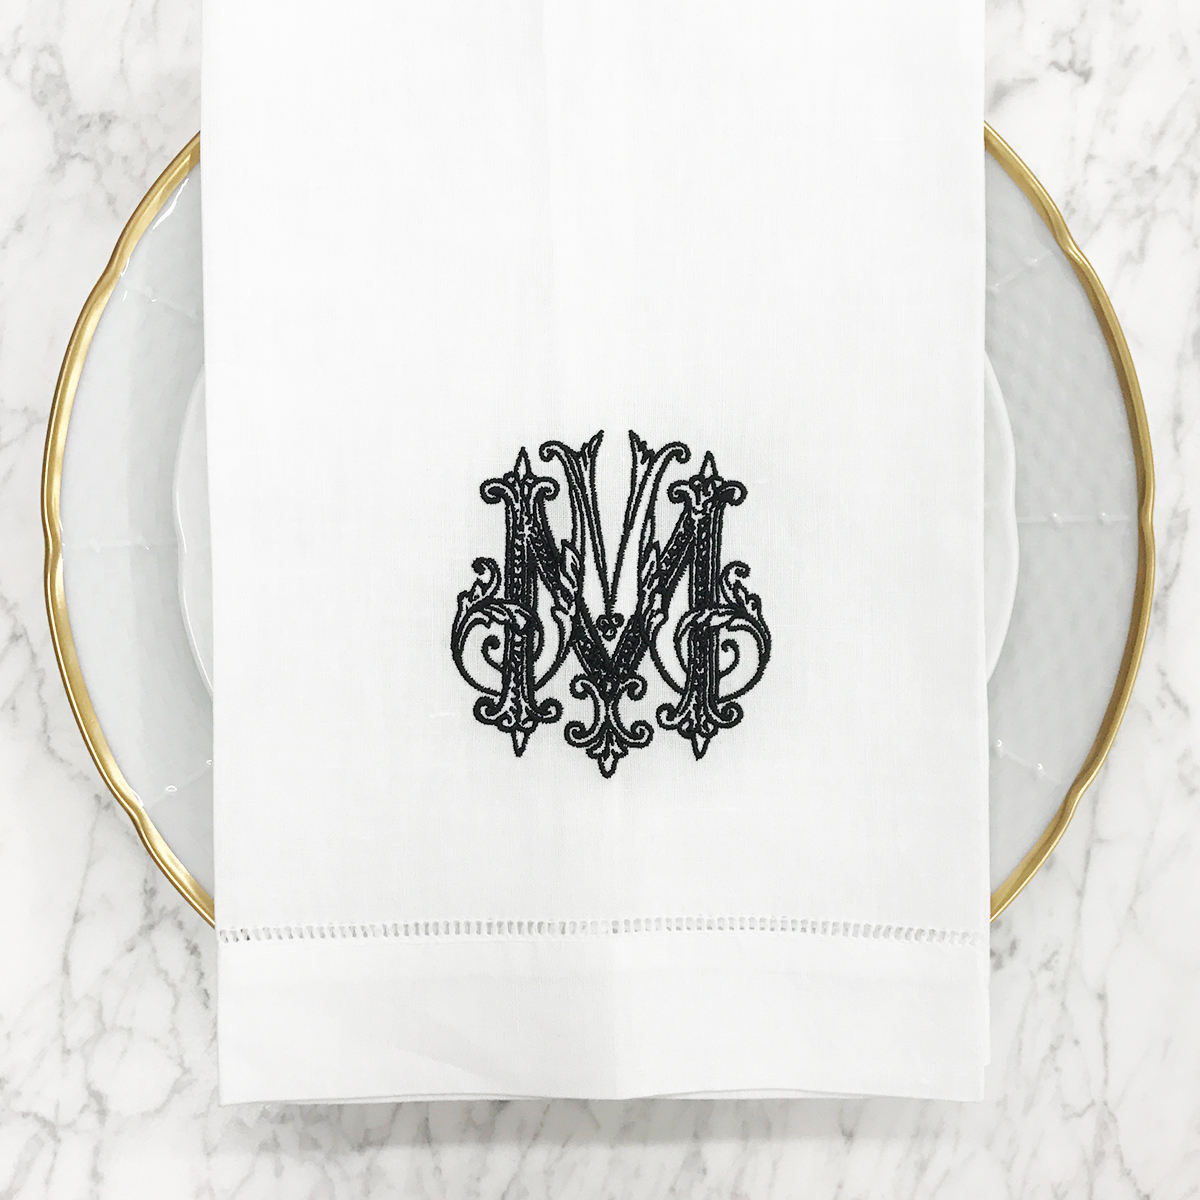 Dinnerware Tablescapes China Weddings Registry Ideas Monogrammed Unique Dishes Custom Tablesetting Sasha Nicholas St. Louis, Champagne Bucket Wedding Registry Gold New Years Eve Wedding Country Club NYE Winter Wedding Dinner Napkin